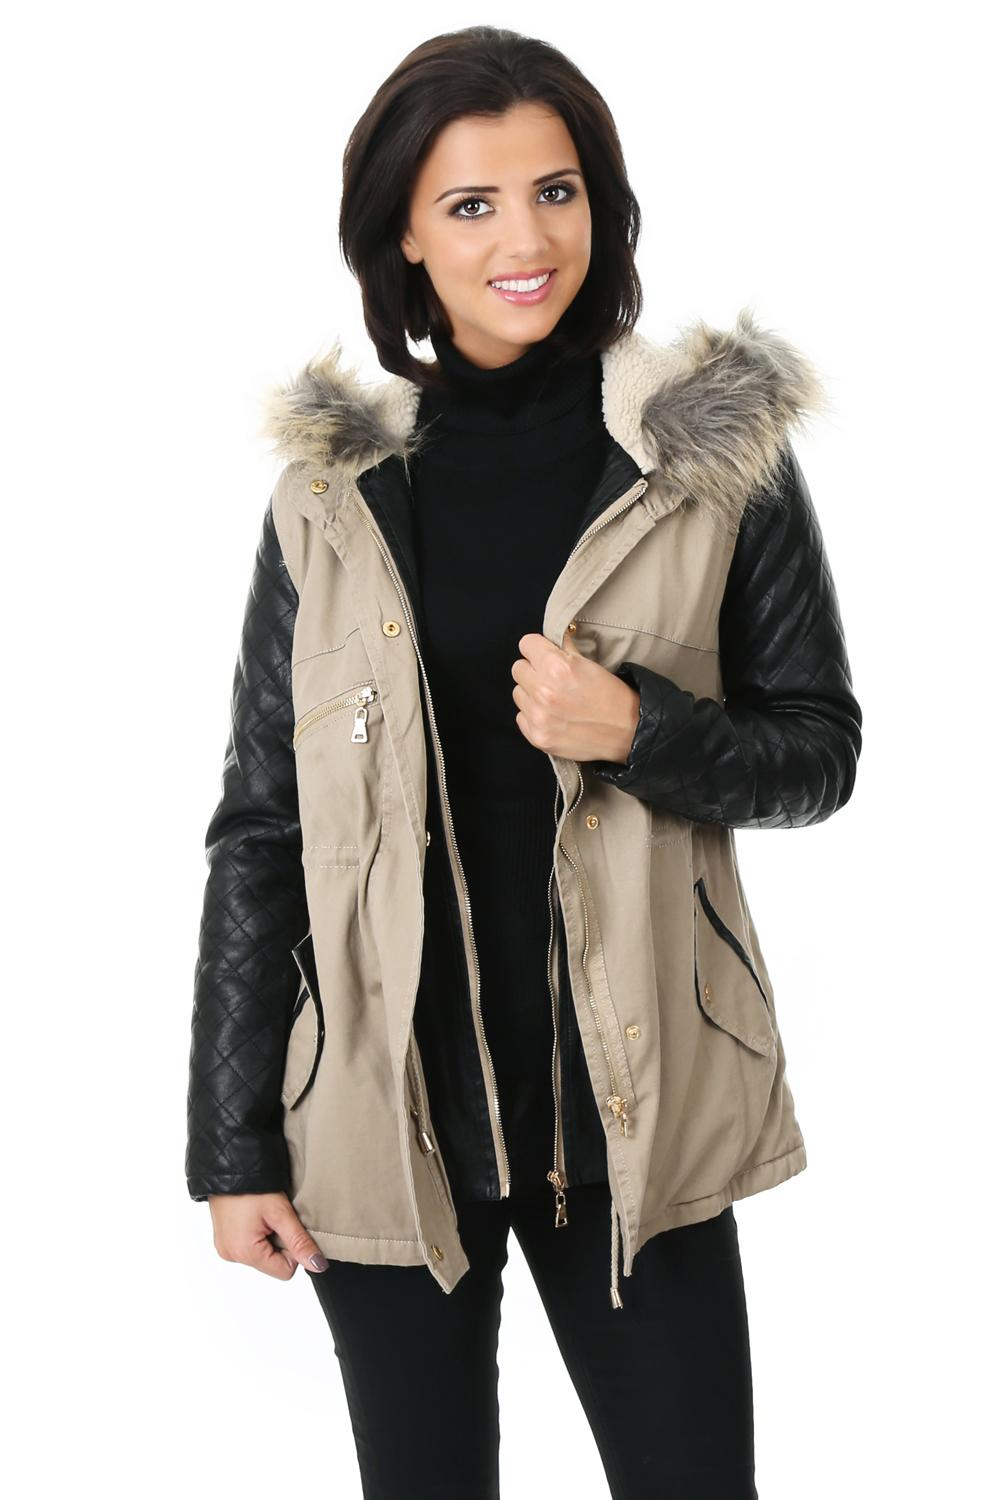 RT @lucys_boutique: Our 'Maisy' Parka is now back in stock in black & tan in all sizes!! You can get yours here: http://t.co/KklsNwbkhr htt…